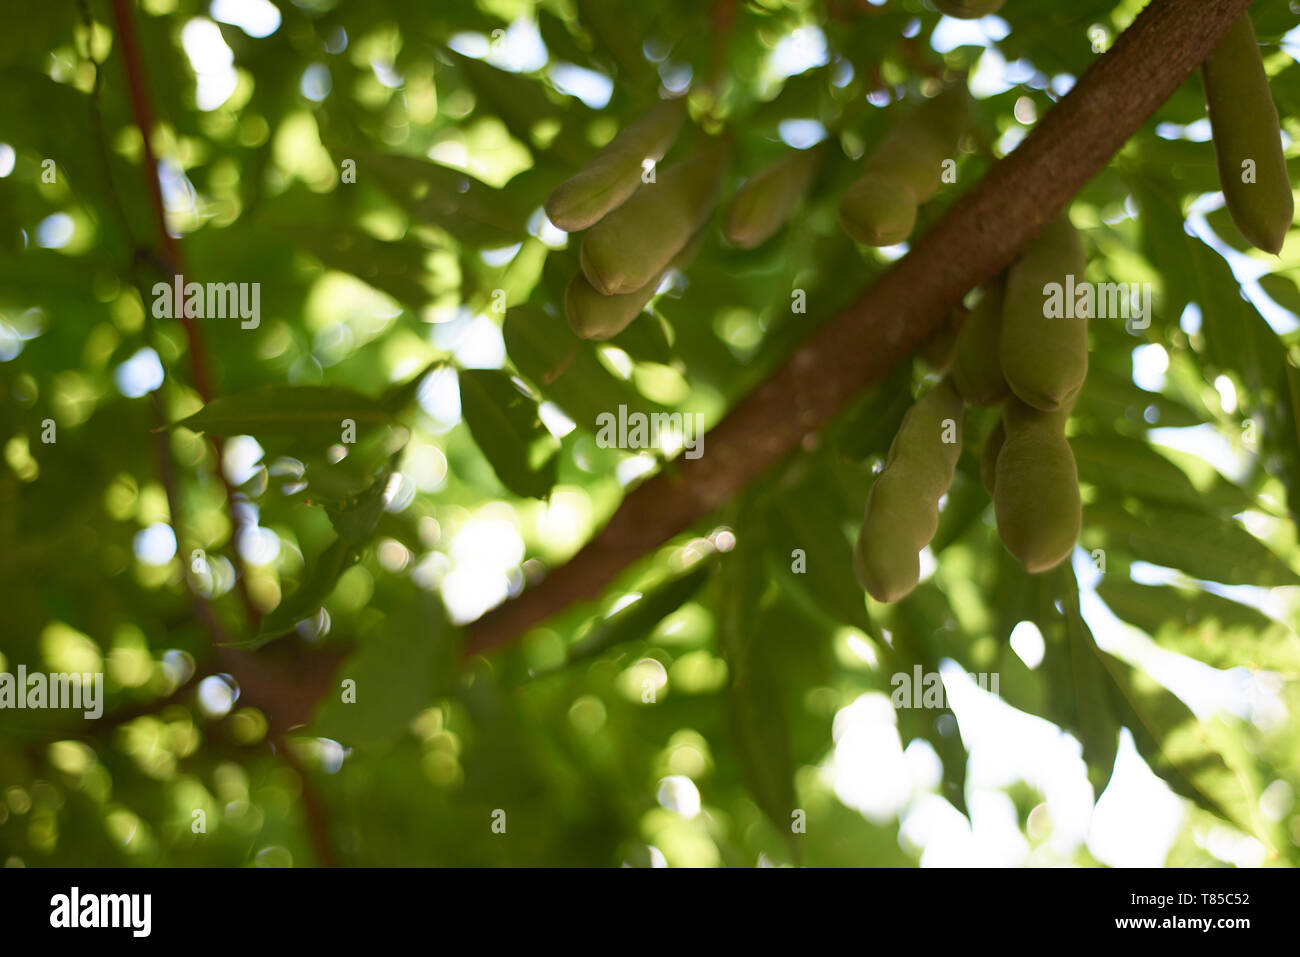 Beautiful shot of fresh growing green beans hanging on a tree in summer sunshine - Stock Image